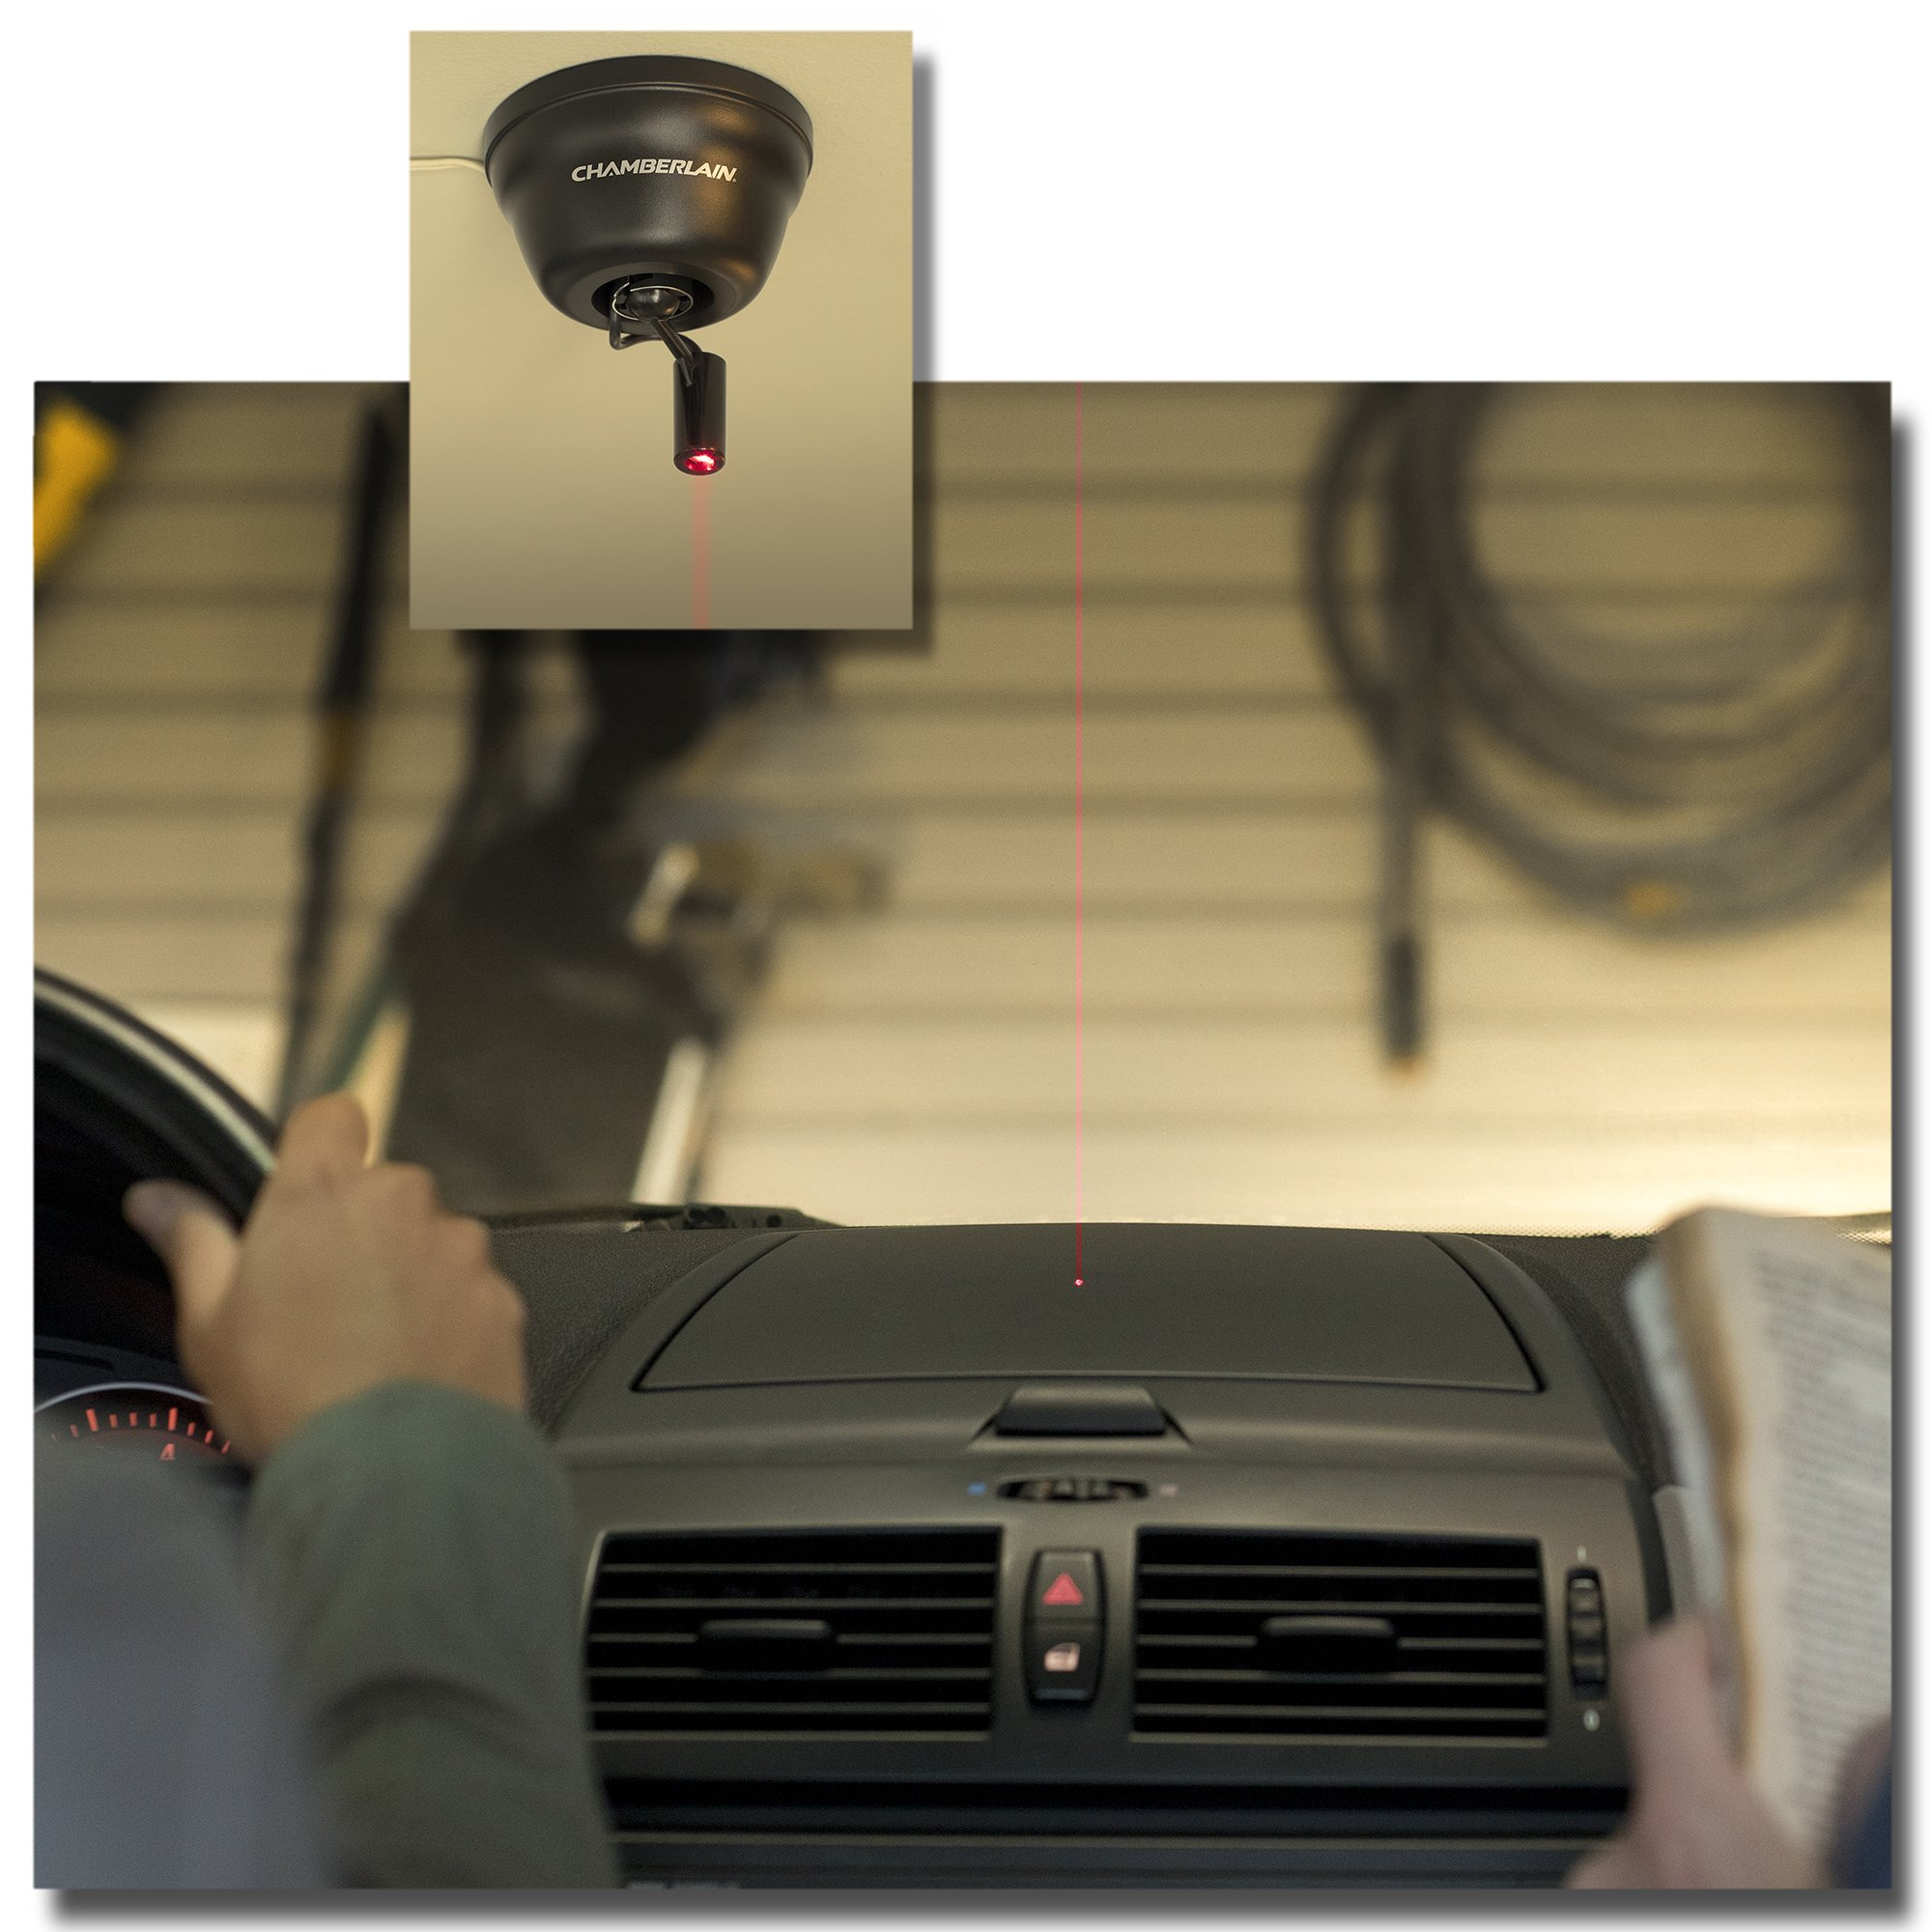 Chamberlain Universal Garage Parking Aid/Assistant CLULP1, Laser Identifies Perfect Parking Spot, Works with Chamberlain, LiftMaster, Craftsman, Genie and All Other Brands of Garage Door Openers by Chamberlain (Image #6)